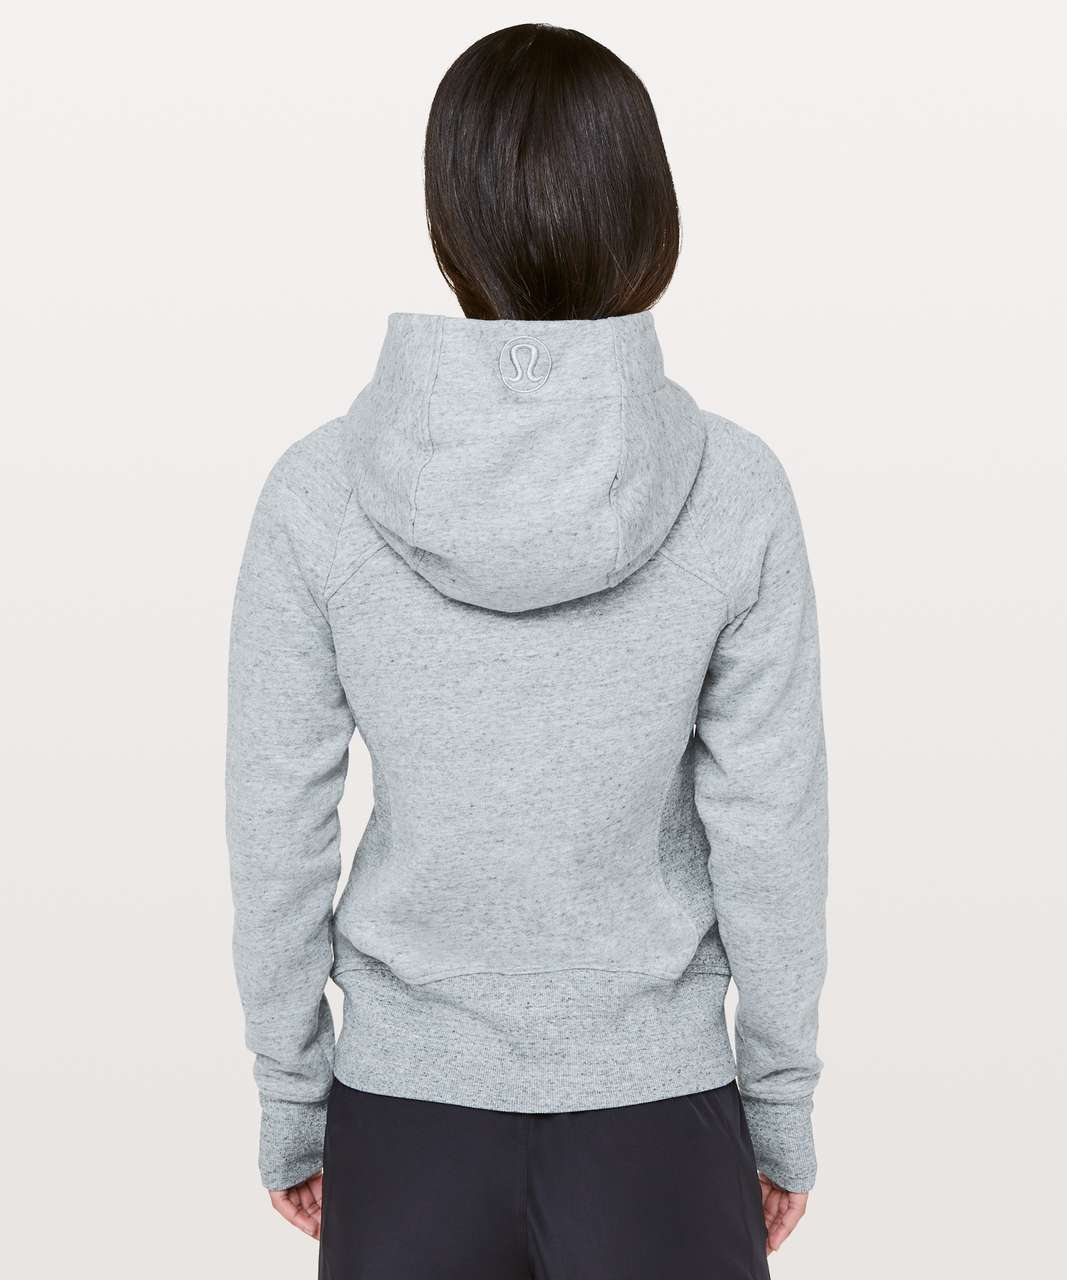 Lululemon Scuba Hoodie *Light Cotton Fleece - Heathered Silver Lake Slub